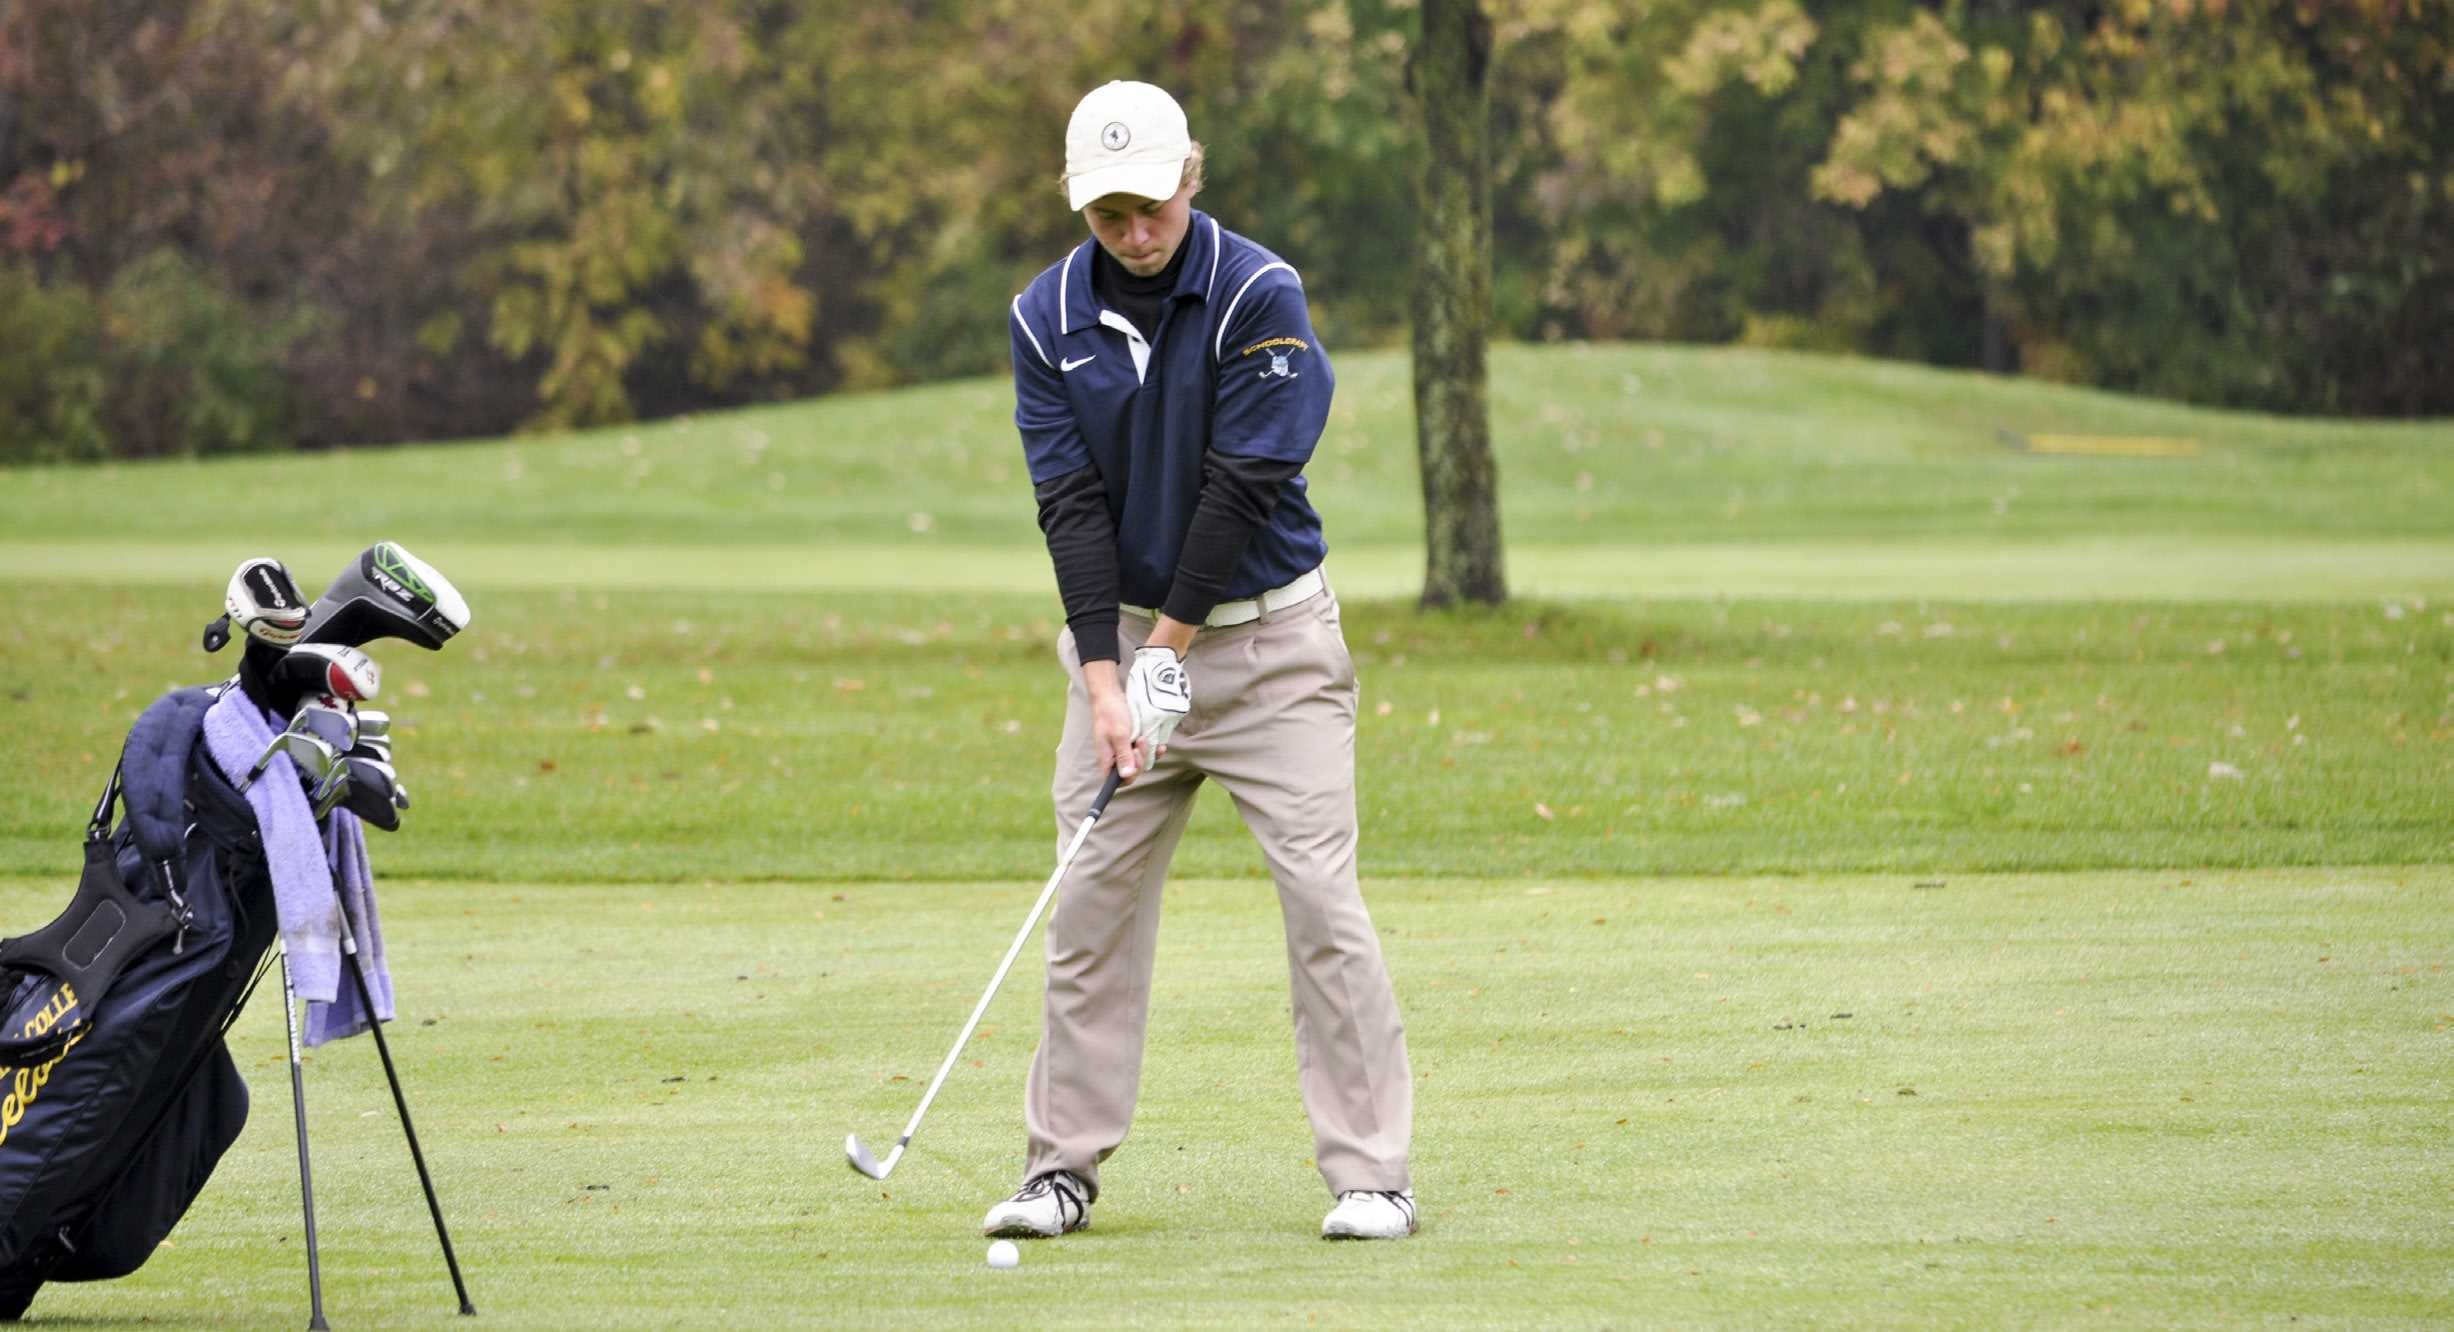 Sophomore Austin Harris eyes up his approach shot as he tries to hit the ball near the hole in the Schoolcraft College Invitational.